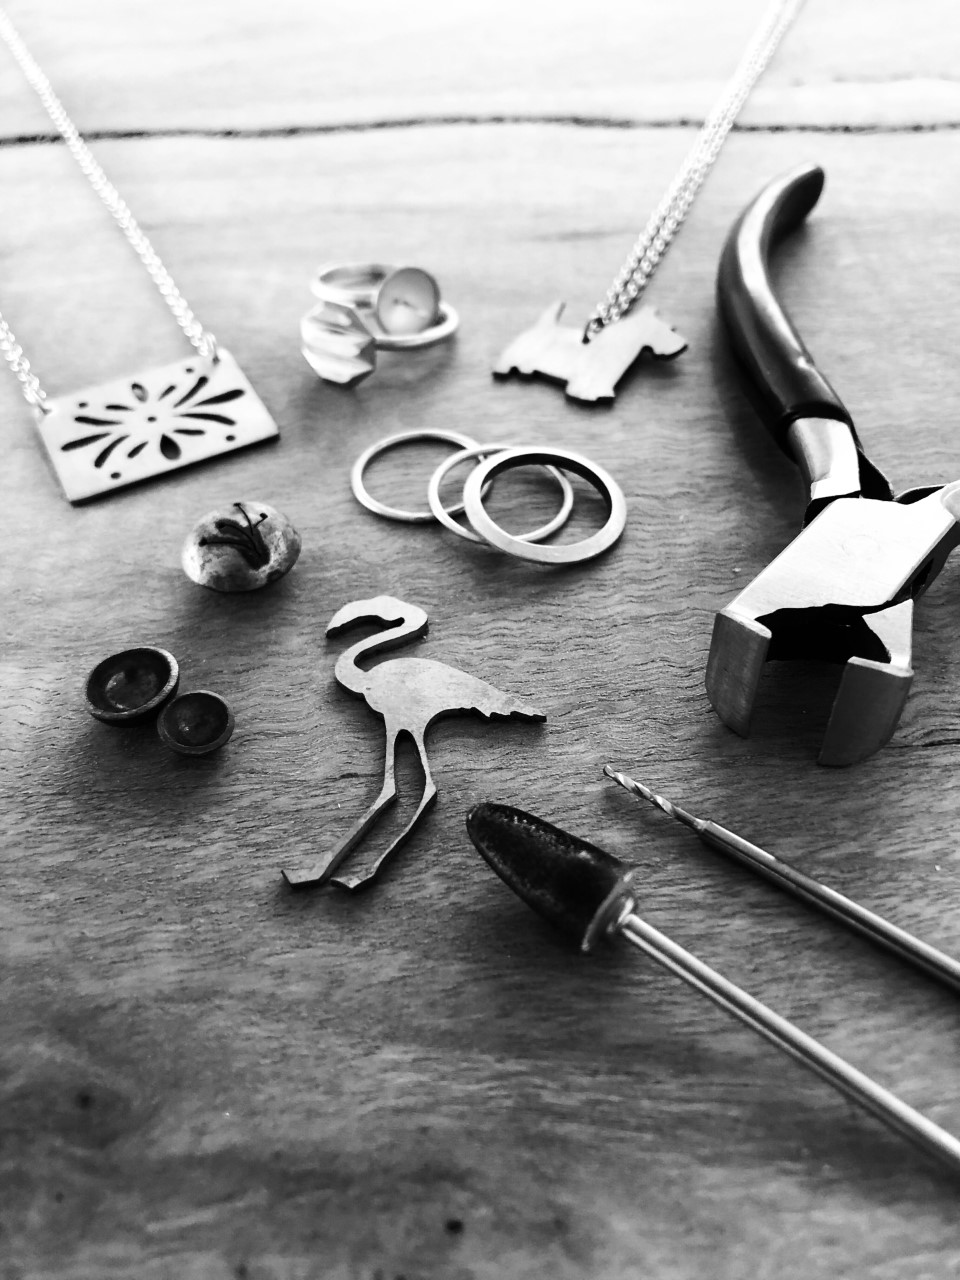 Handmade Jewellery for Beginners - Are you interested in making your own jewellery but aren't sure where to start? Sign up for this seven week night course and learn the basics in a relaxed, social environment. Suitable for absolute beginners to those with more experience, this class is a great introduction or refresher to jewellery making.